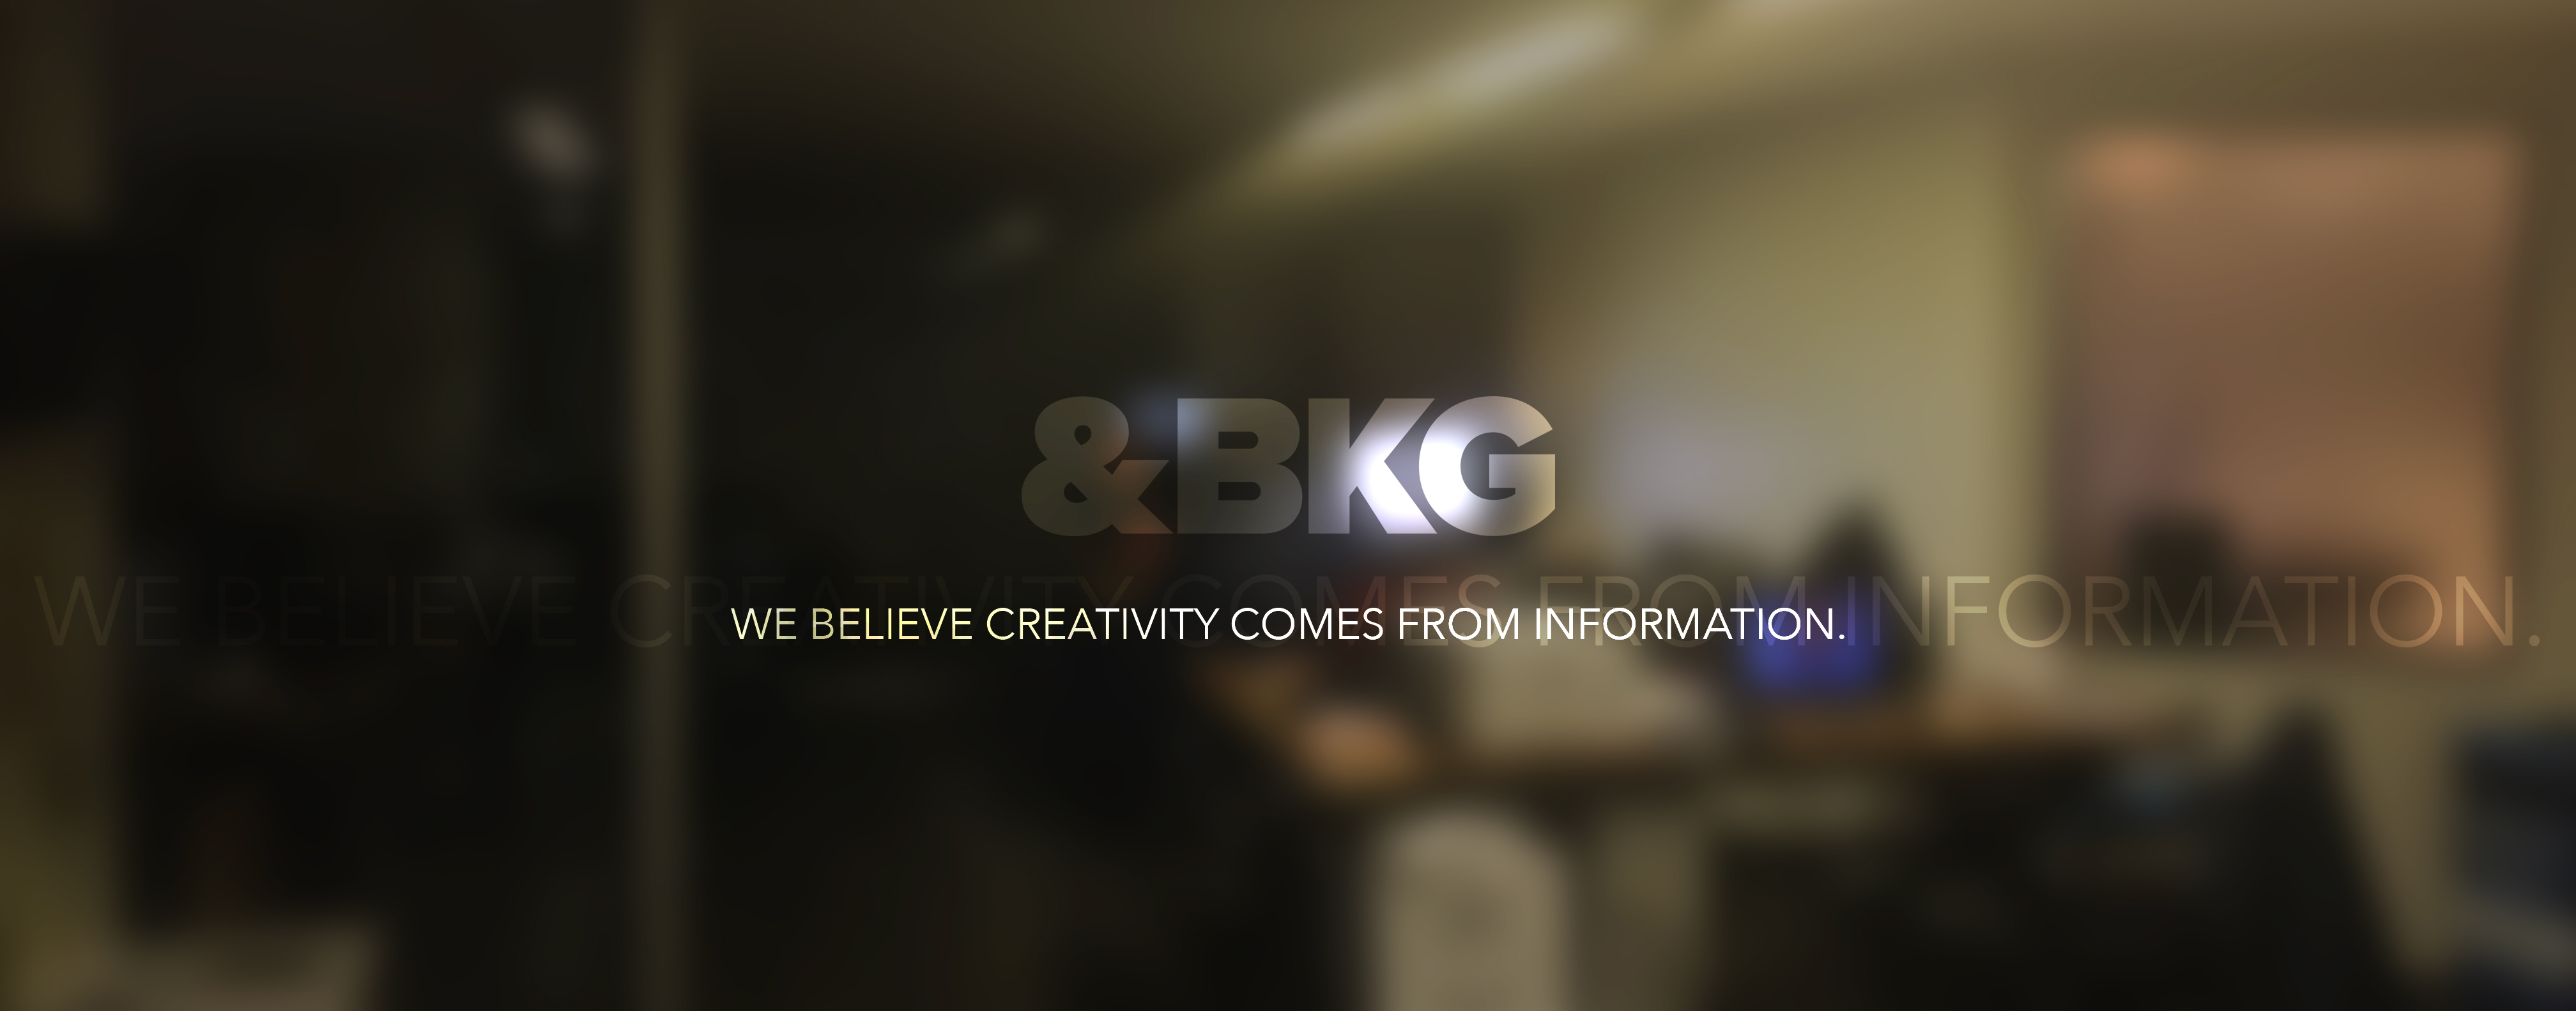 bkg_about